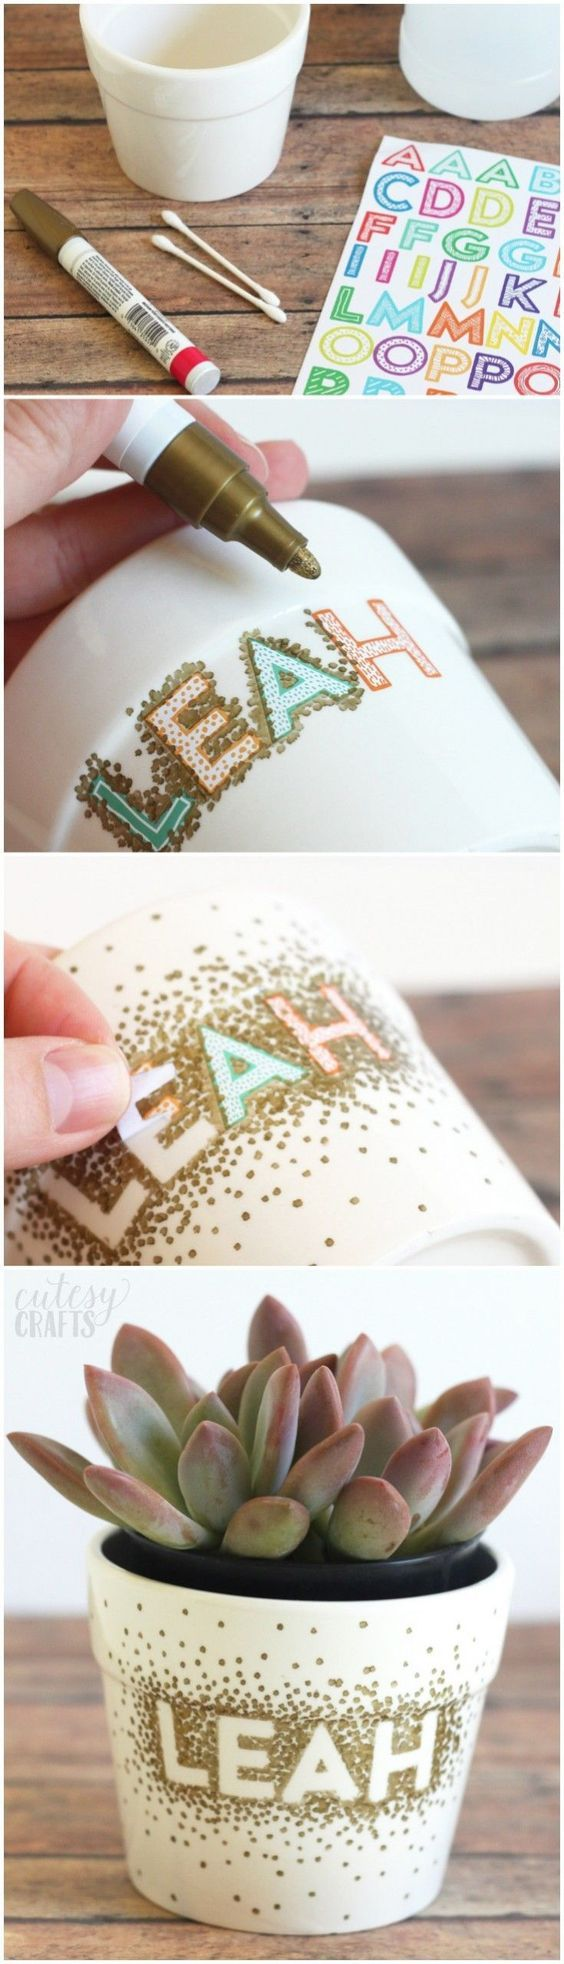 Use a Sharpie to make dots in this unique flower pot craft! It's so easy that a child could do it, and you just need a few simple supplies. via @diy_candy